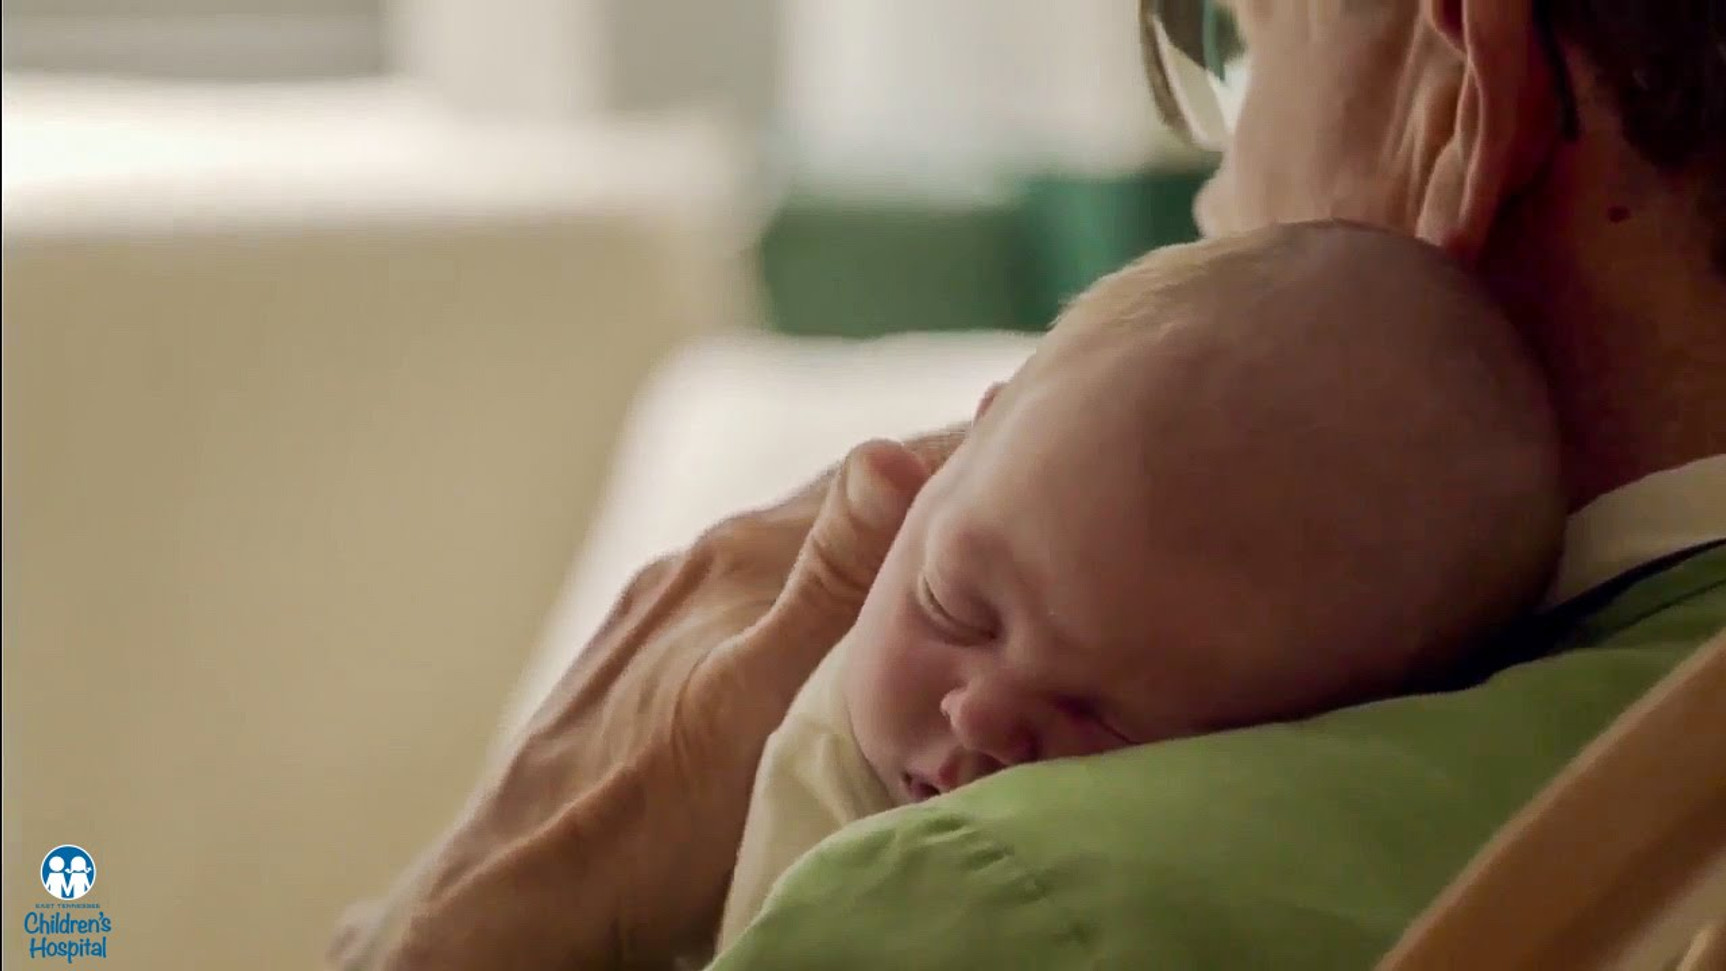 Fighting Neonatal Abstinence Syndrome | 3:41 | East Tennessee Children's Hospital NICU